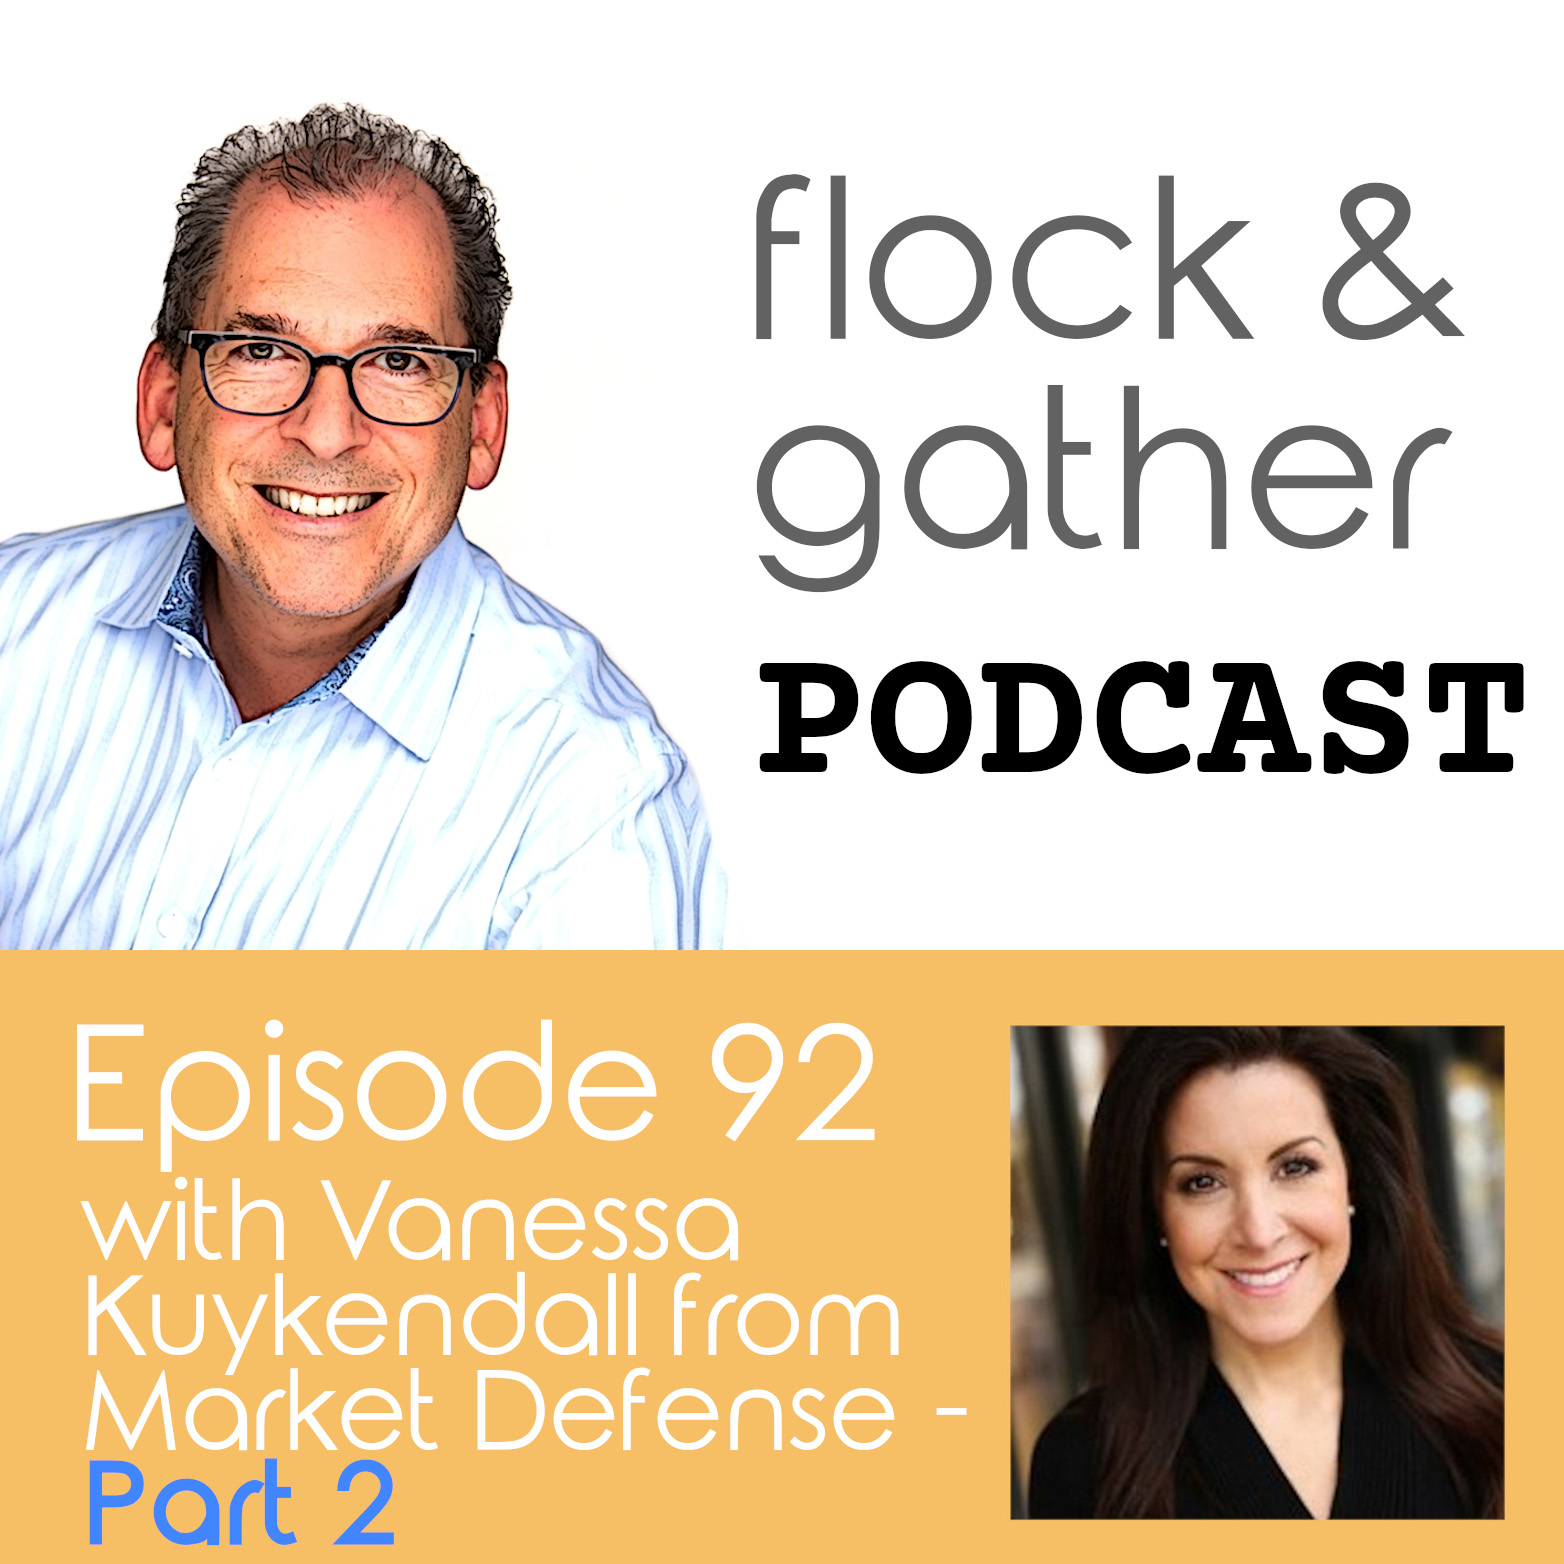 Flock and Gather Podcast.  Episode 92 with Vanessa Kuykendall from Market Defense - Part 2